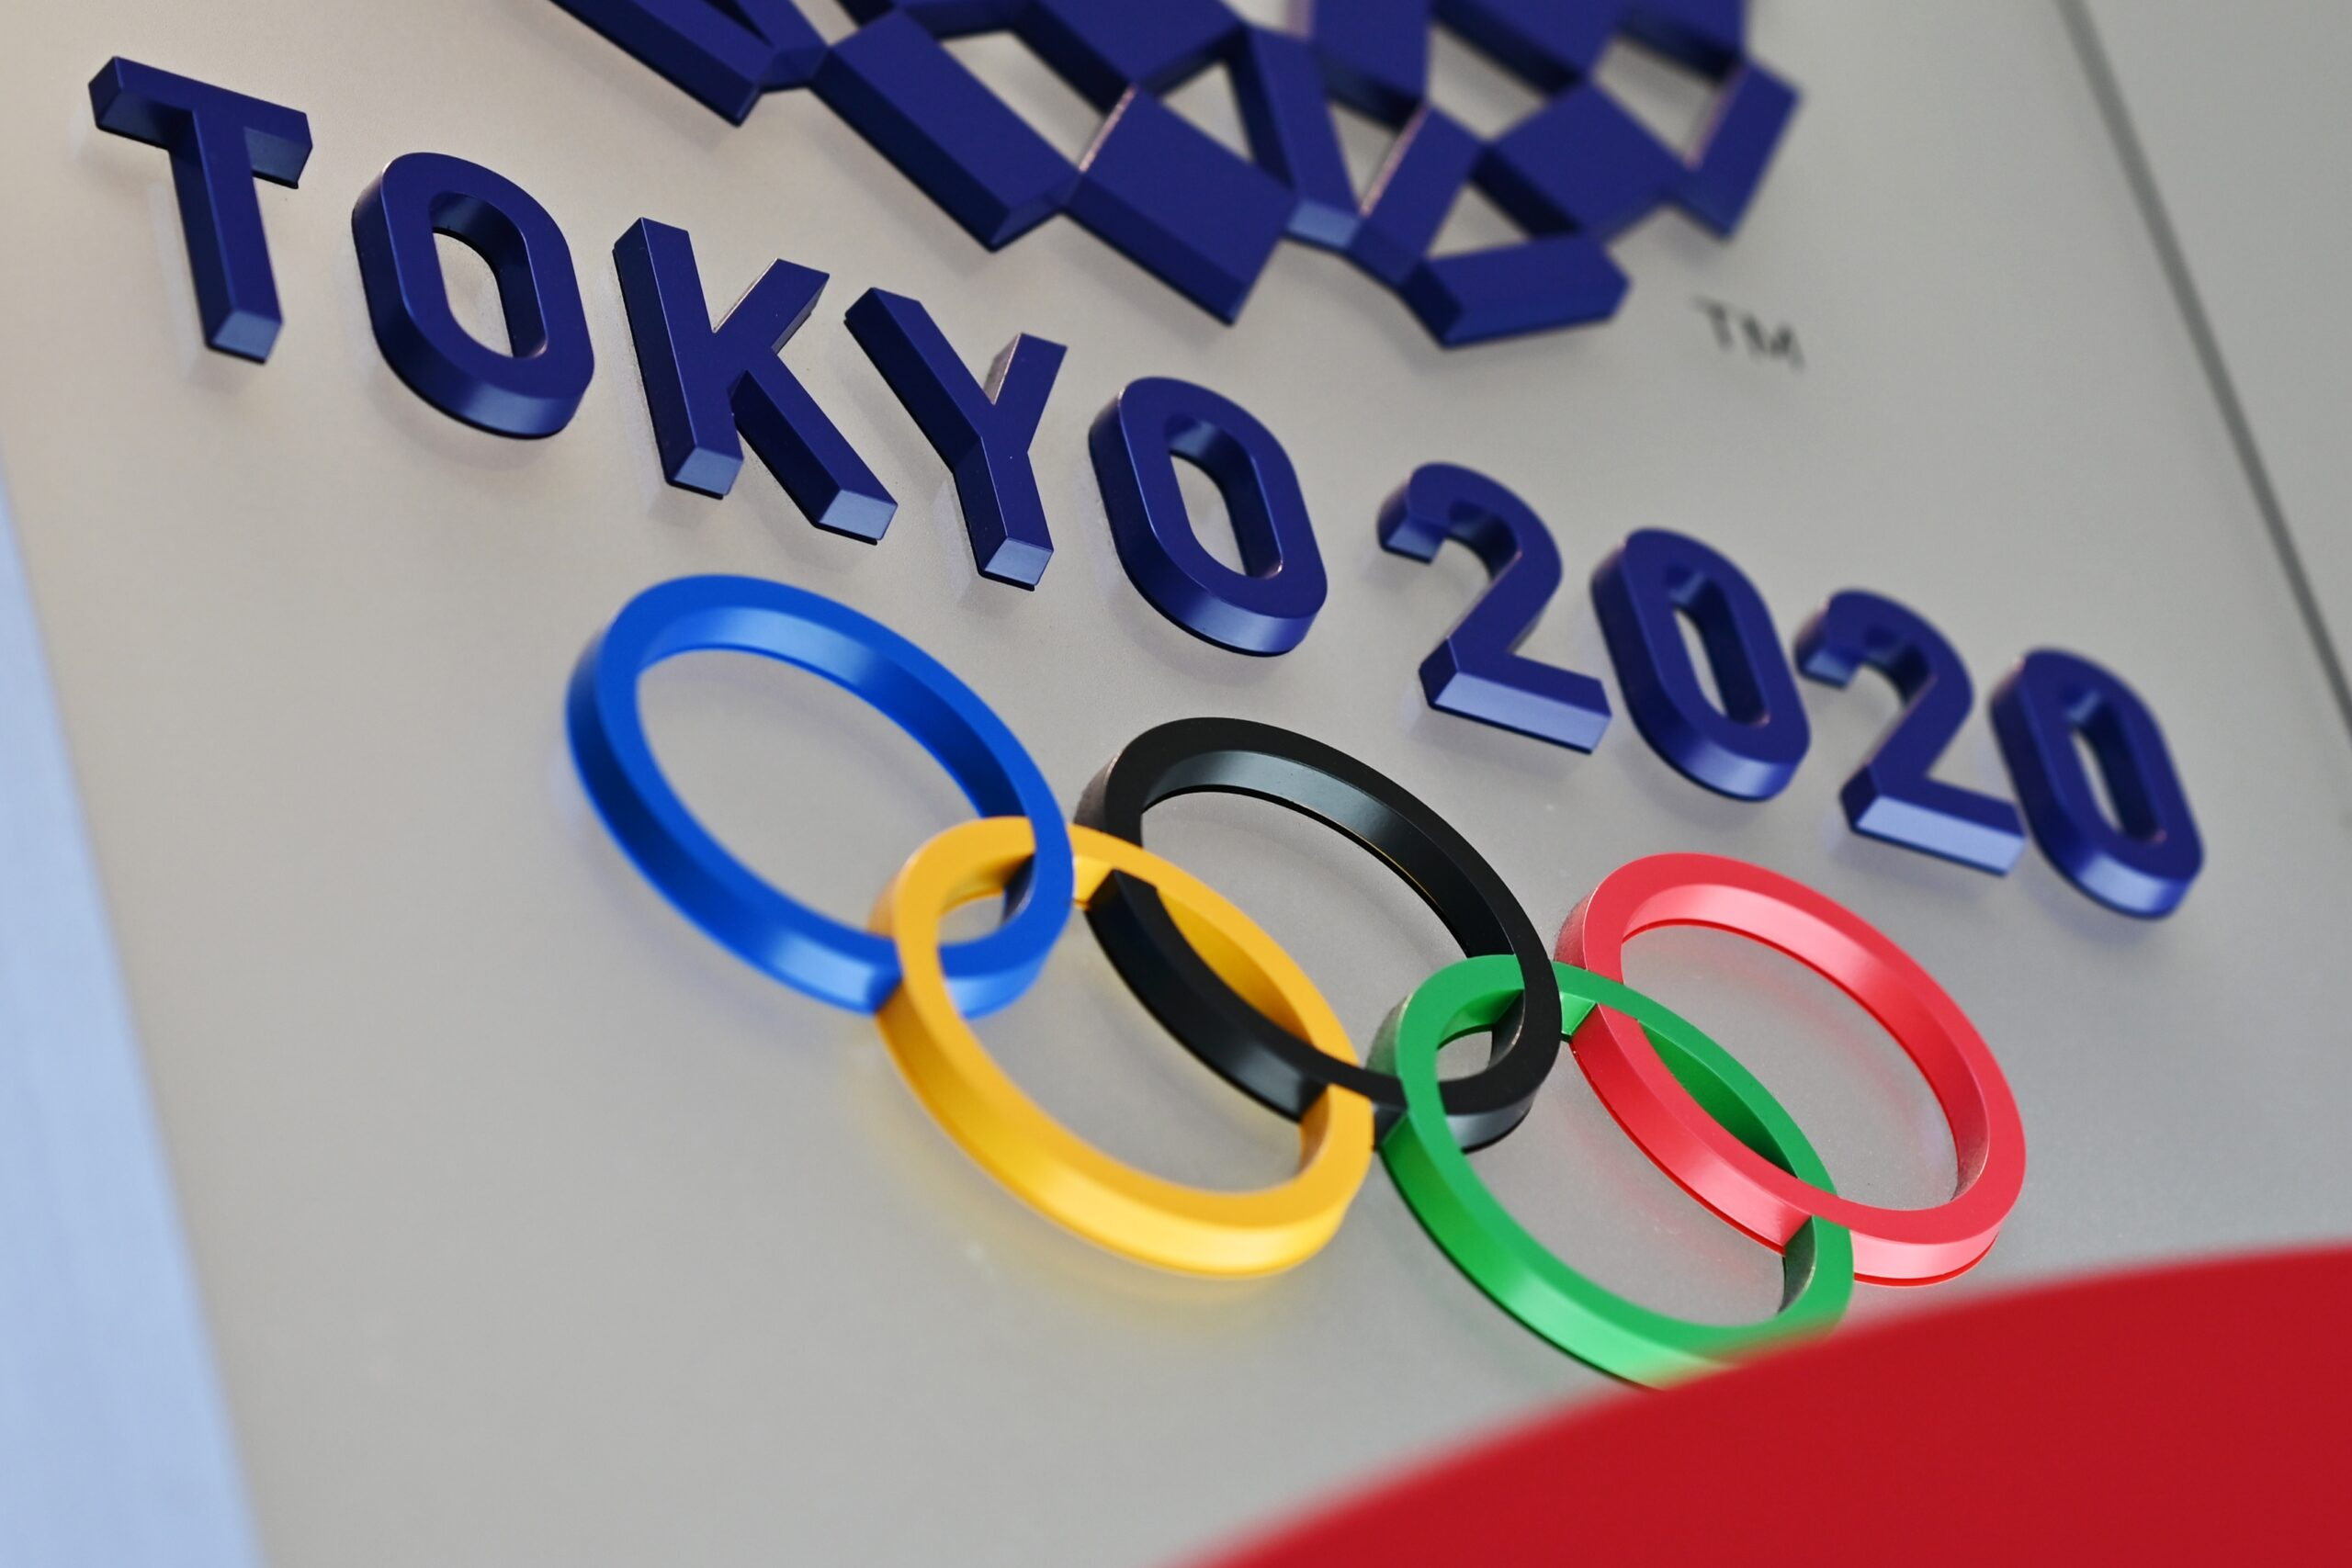 The logo for the Tokyo 2020 Olympic Games is seen in Tokyo on March 15, 2020. Credit: Charly Triballeau/AFP via Getty Images